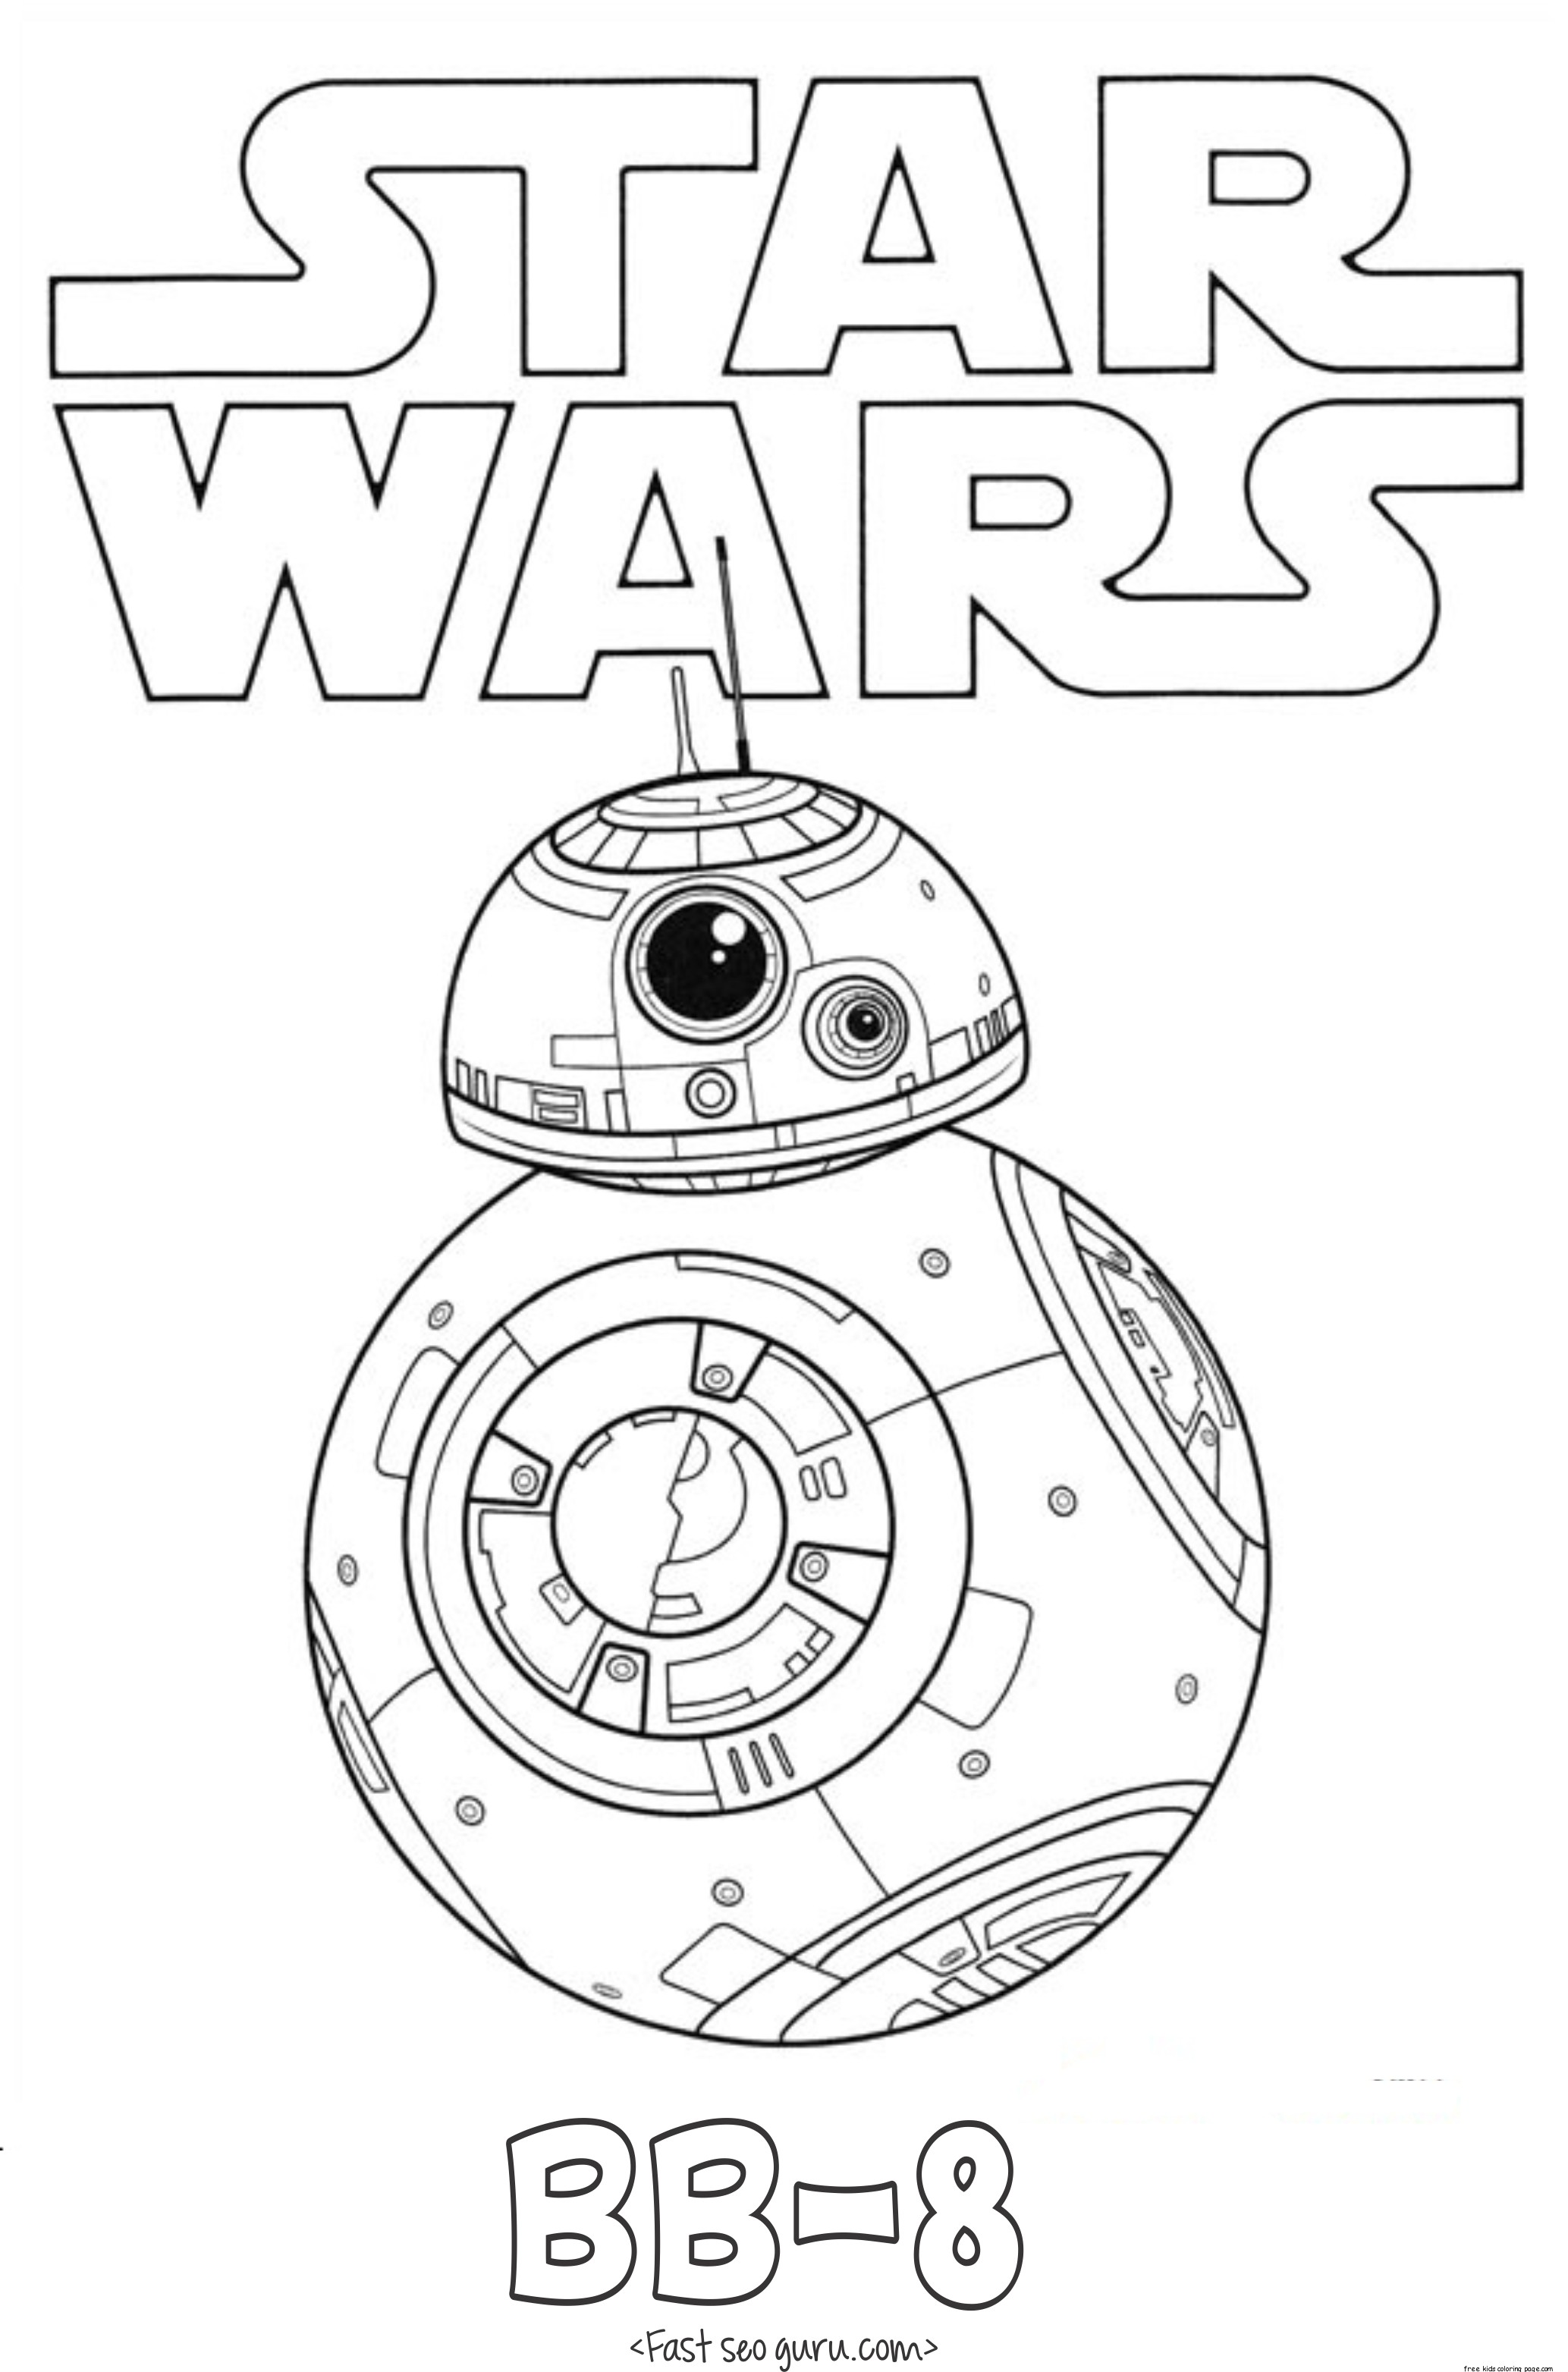 star wars coloring pages for kids star wars to download star wars kids coloring pages coloring star pages kids for wars